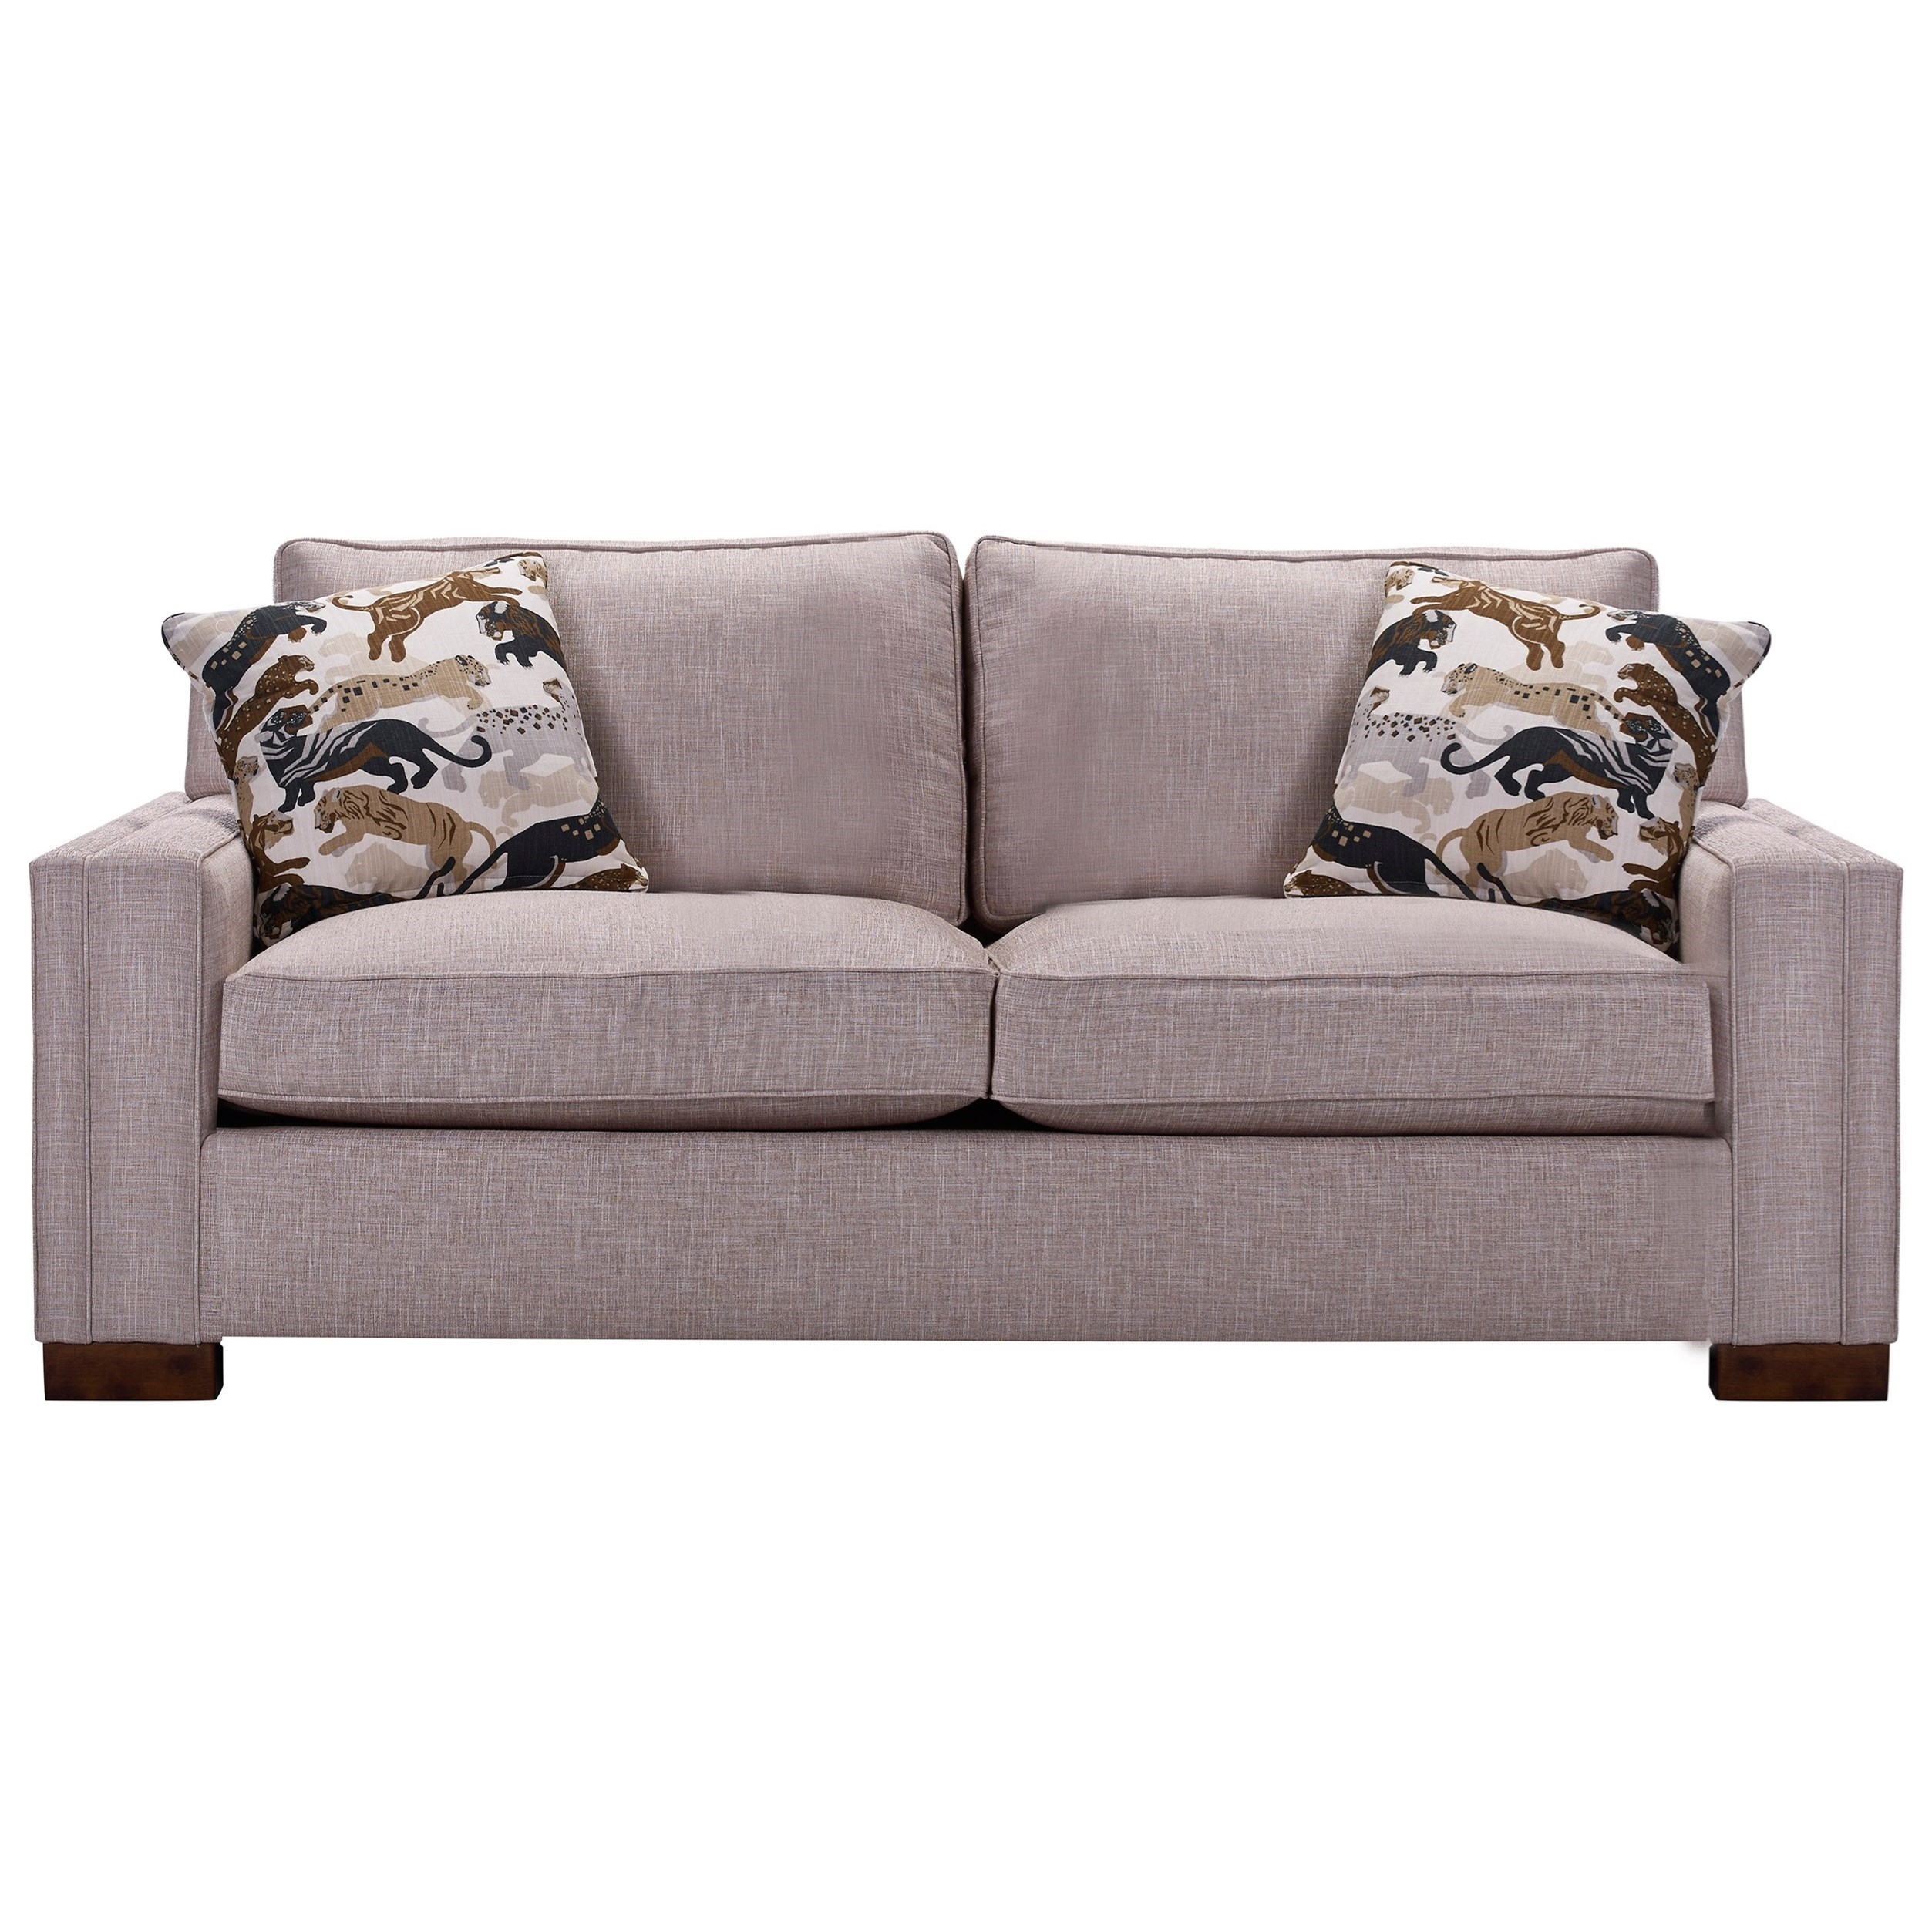 Broyhill Furniture Rocco 4280 2 Apartment Sofa With Sleek